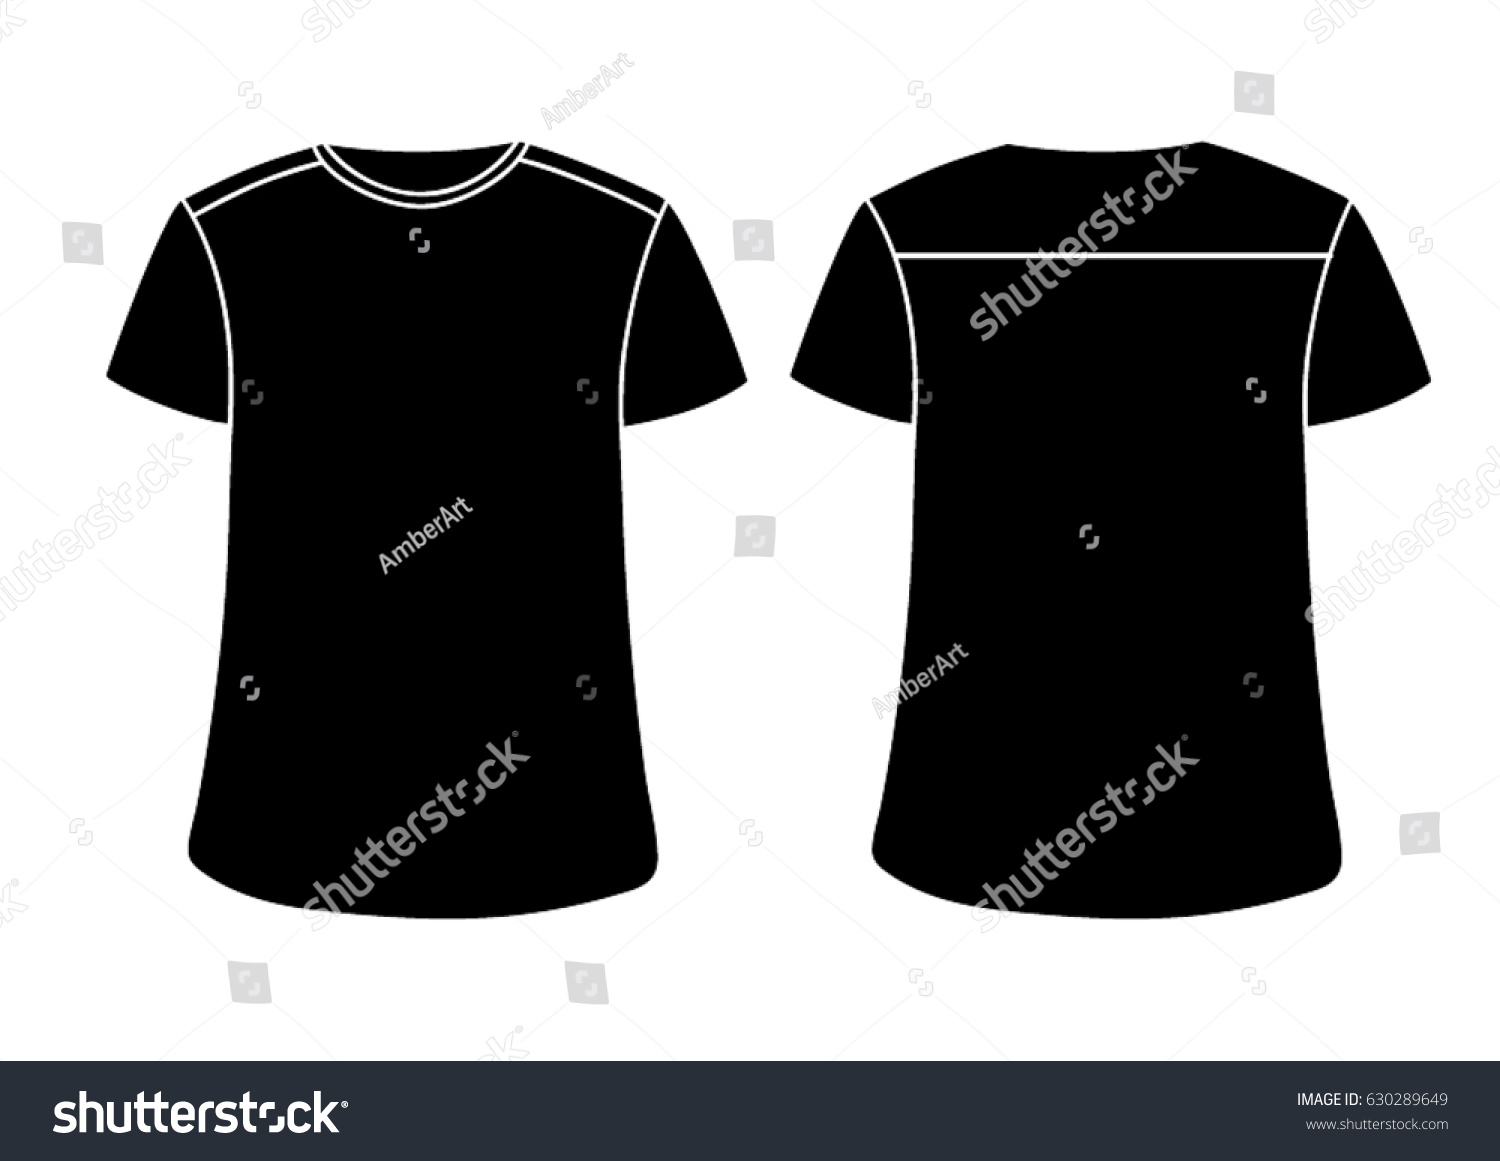 black vector males females tshirt template stock vector 630289649 shutterstock. Black Bedroom Furniture Sets. Home Design Ideas